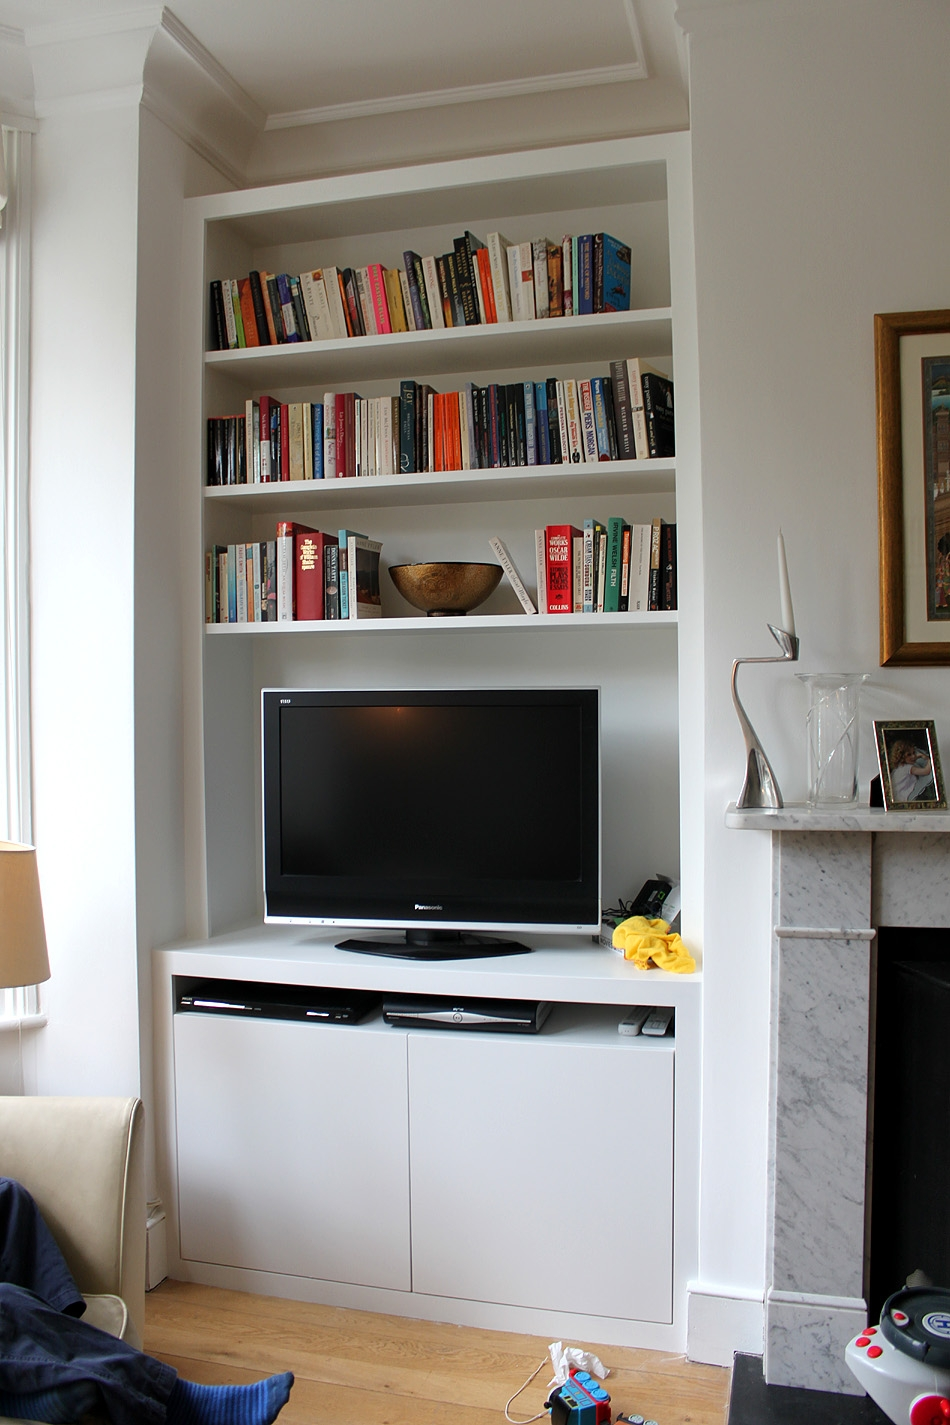 Fitted Wardrobes Bookcases Shelving Floating Shelves London With Tv Cabinet And Bookcase (Image 7 of 15)